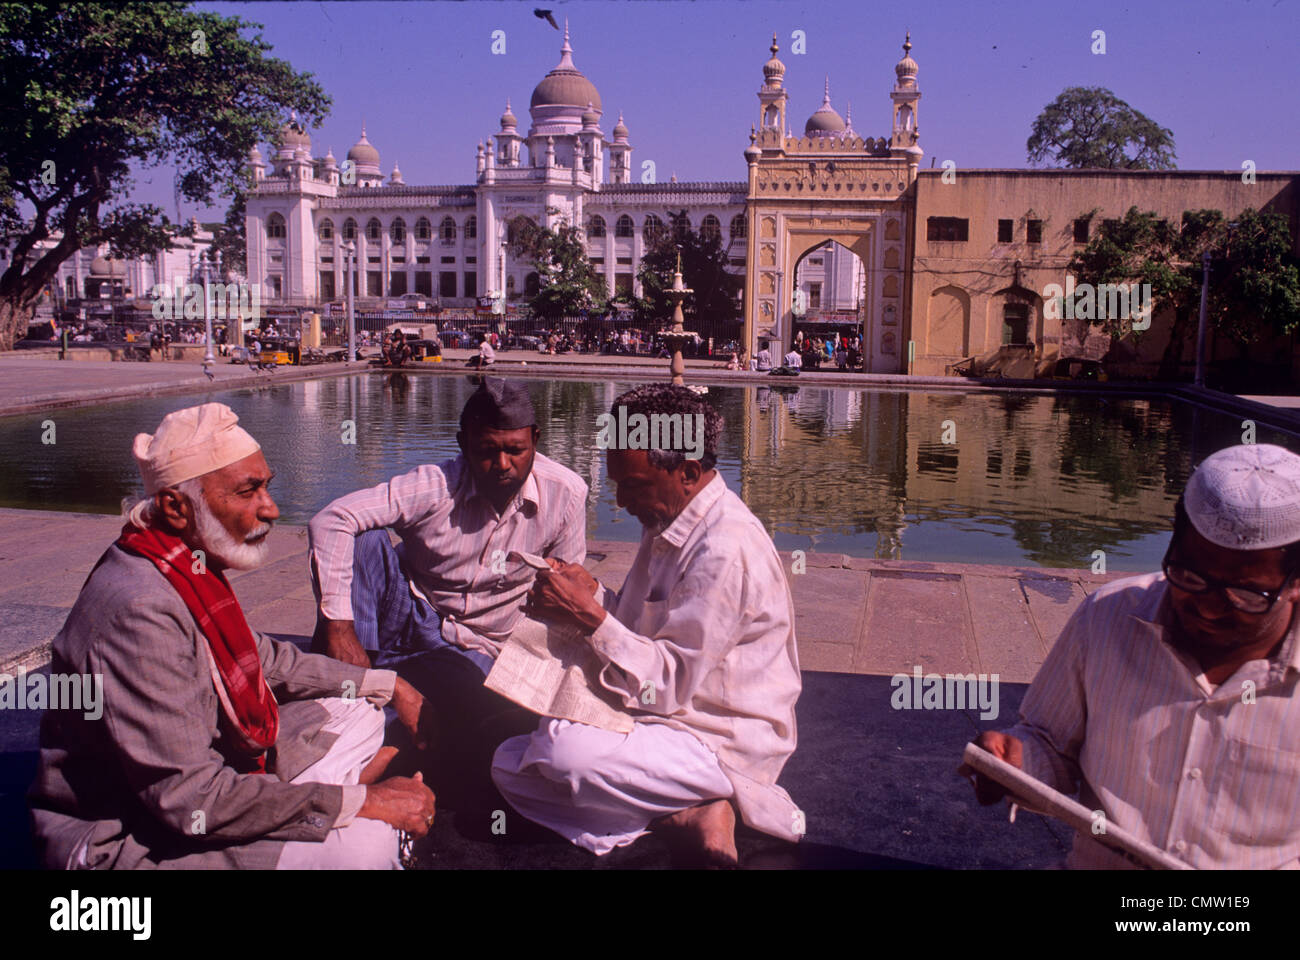 Indian Muslims in mosque courtyard in Hyderabad India - Stock Image